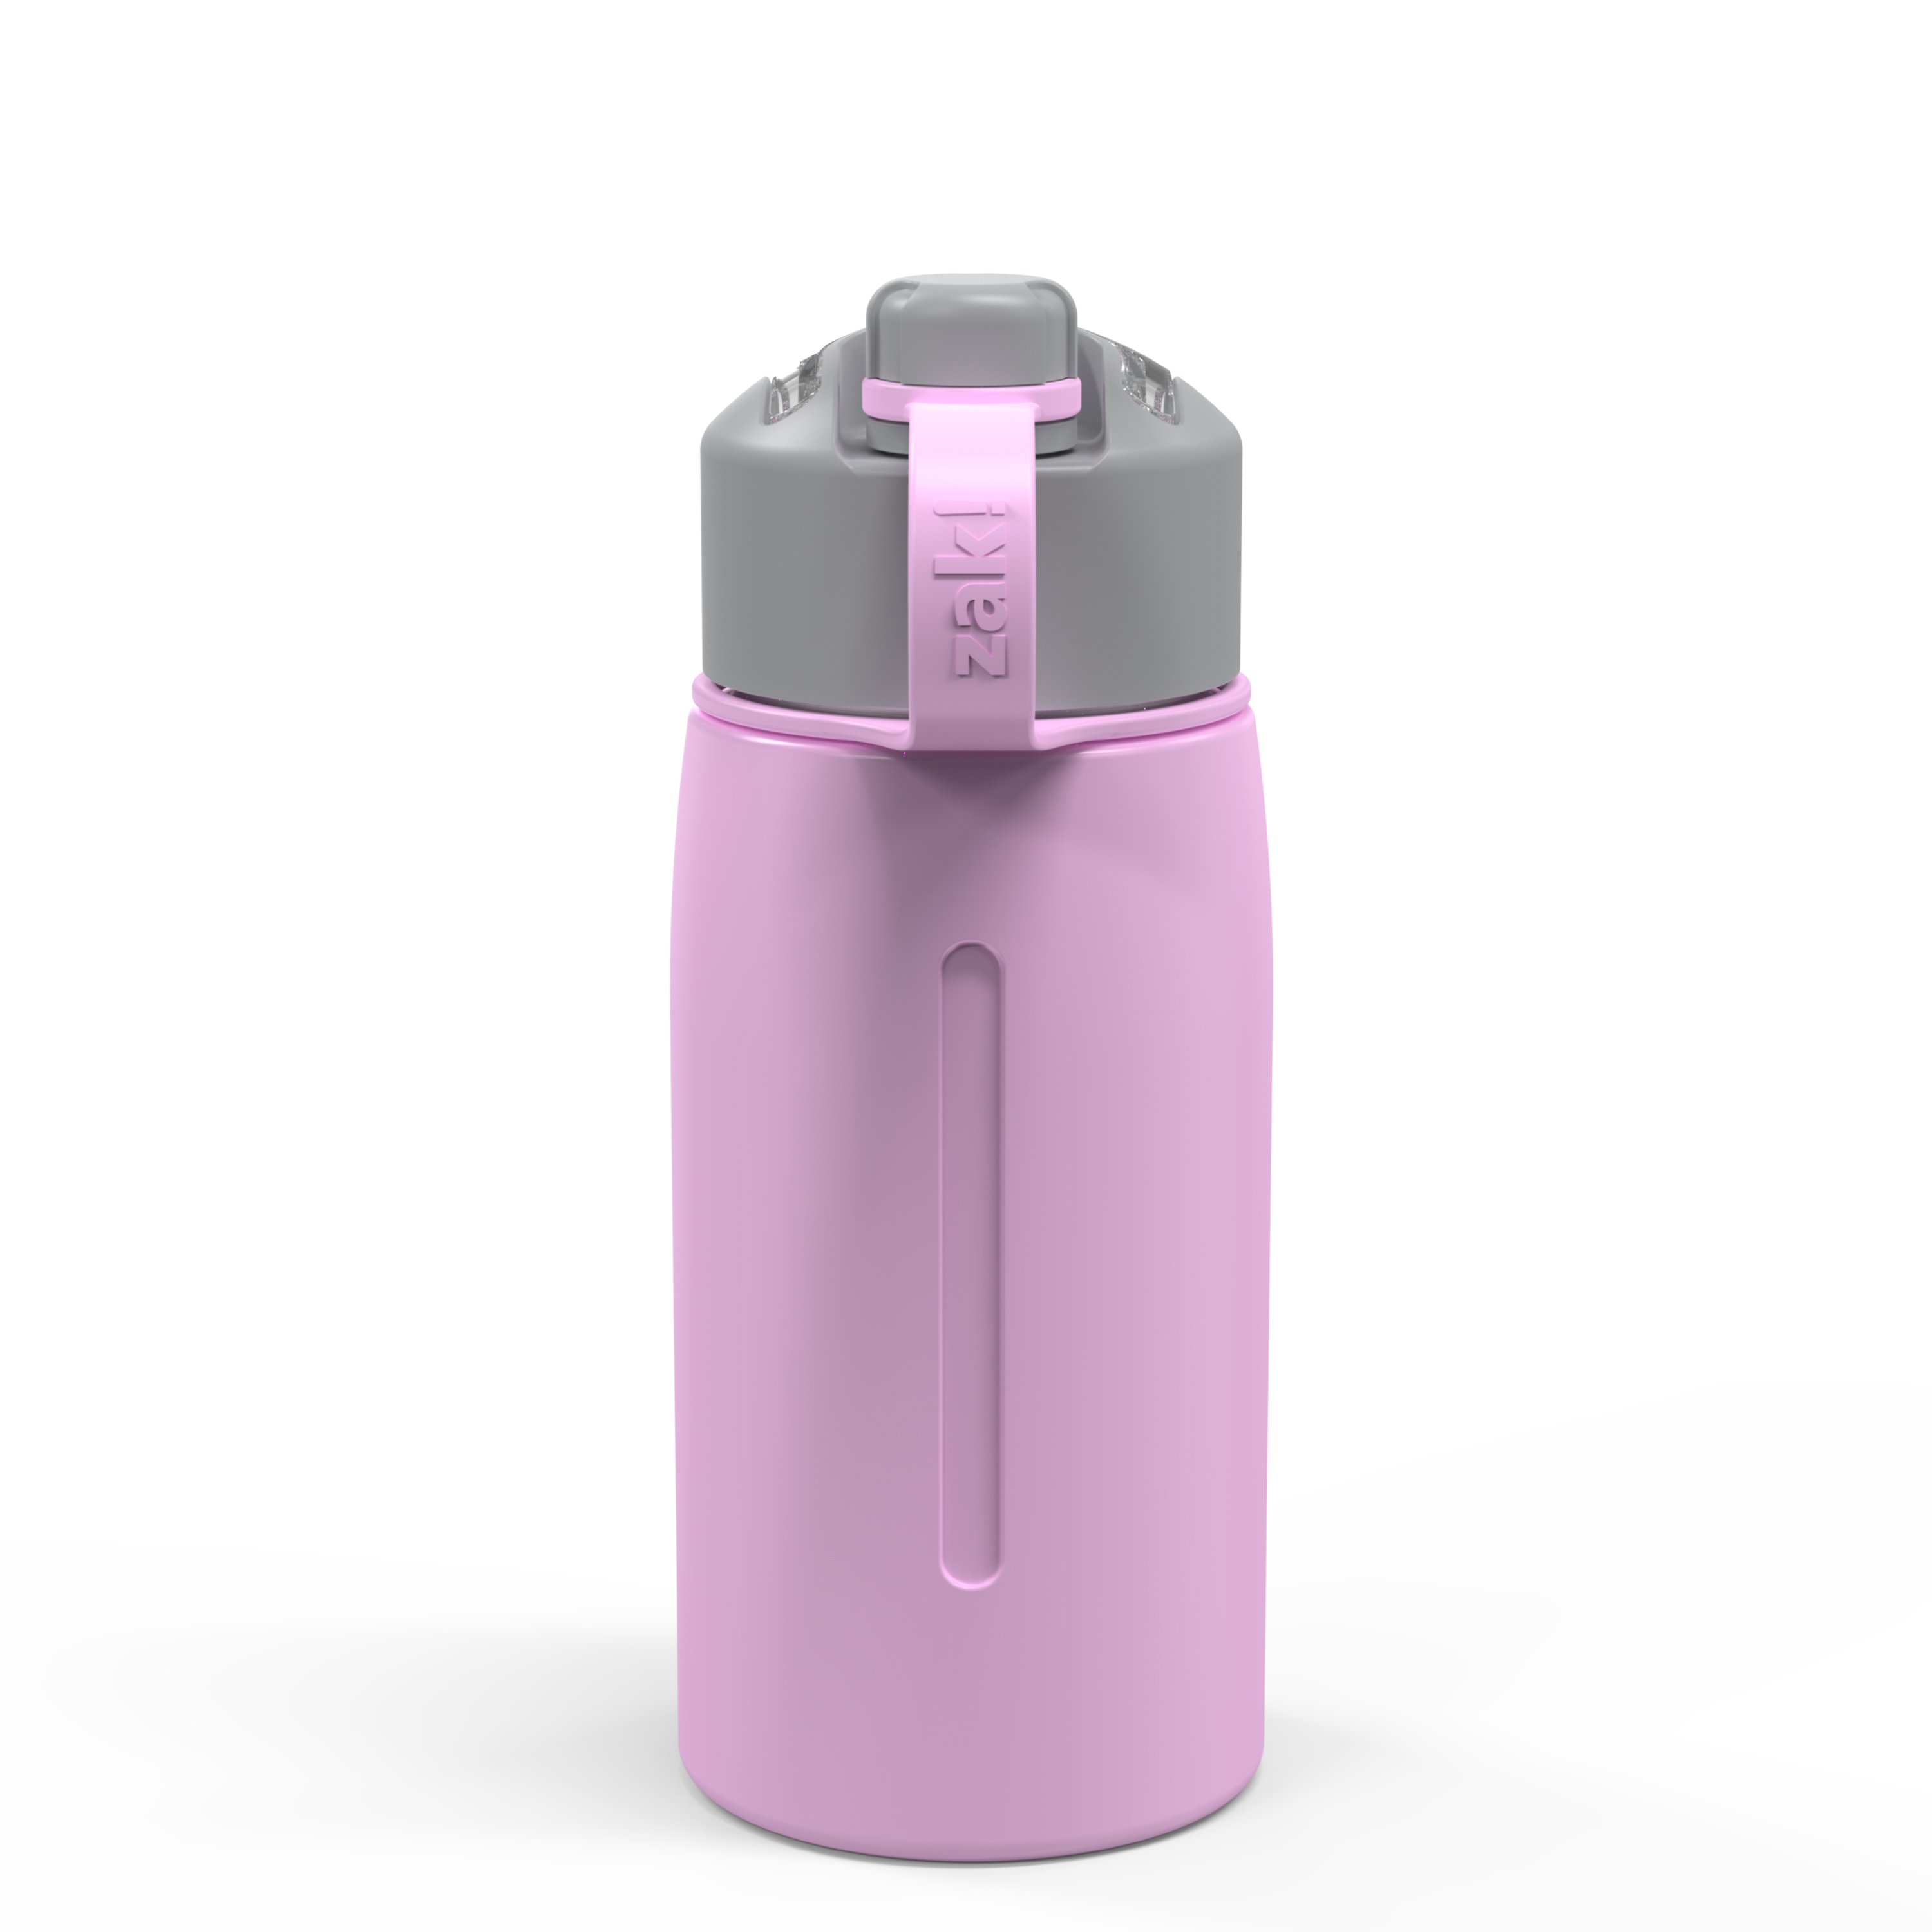 Genesis 18 ounce Vacuum Insulated Stainless Steel Tumbler, Lilac slideshow image 9